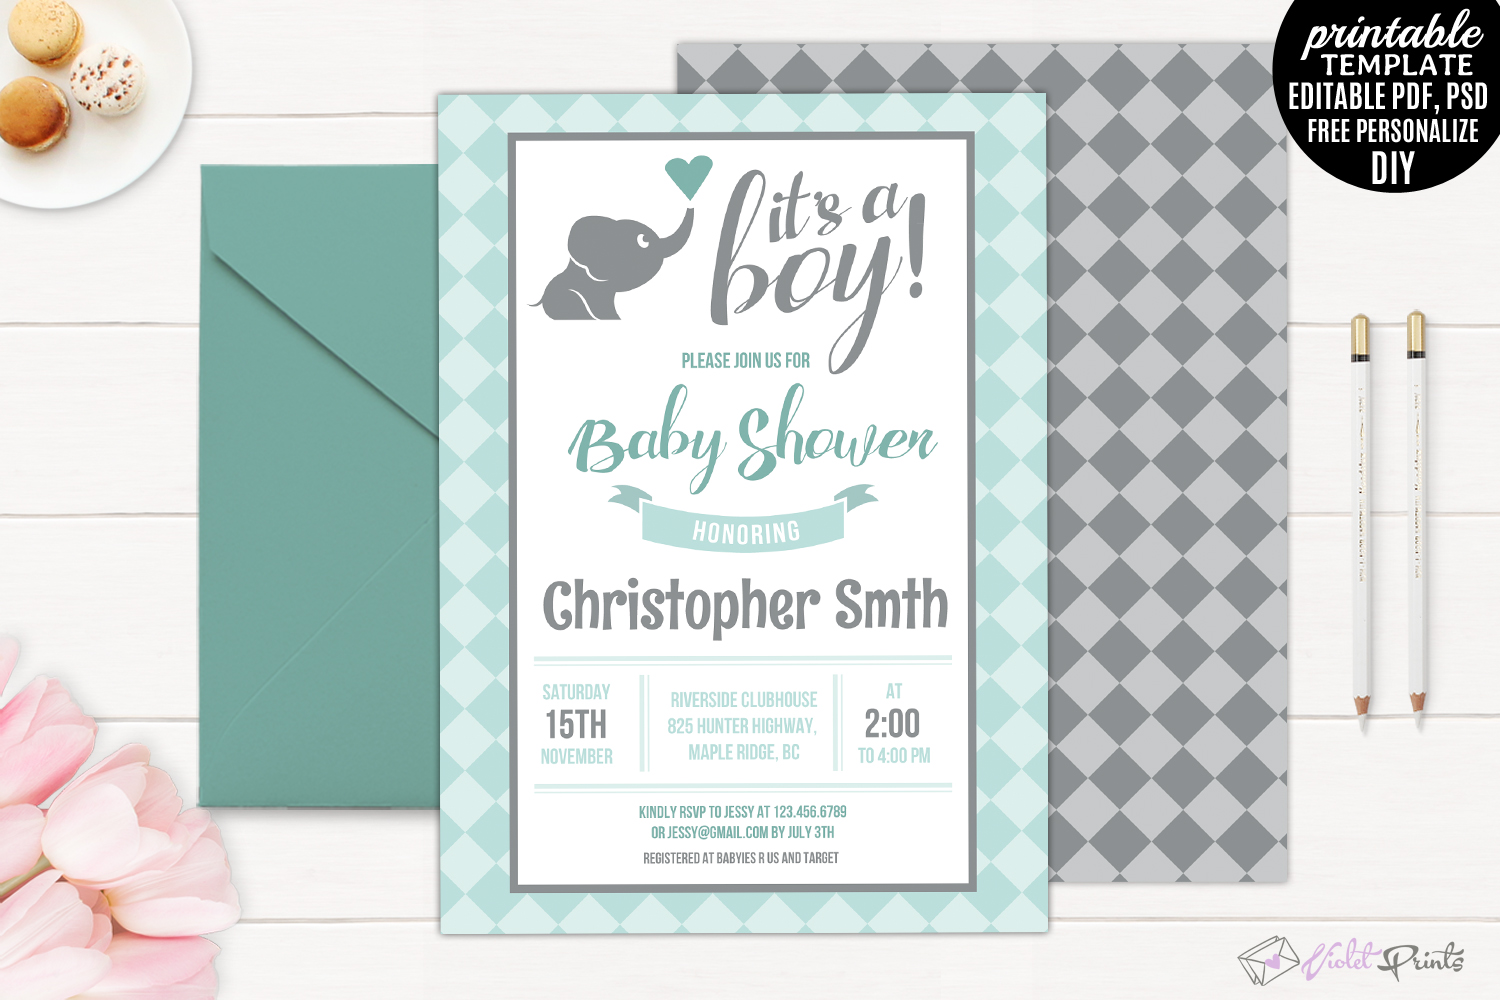 Mint and Grey Elephant Baby Shower Invi | Design Bundles